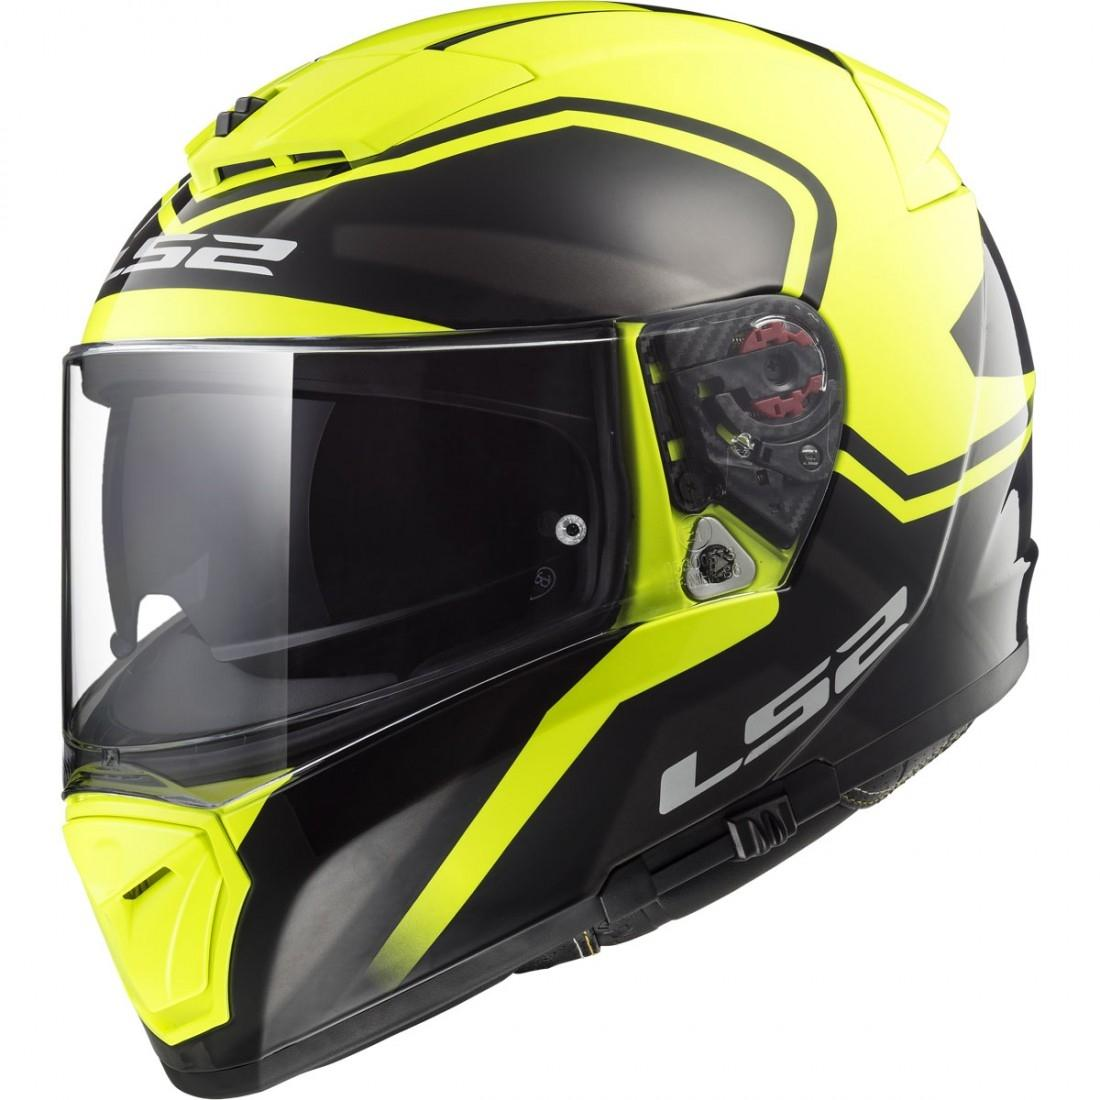 9c8002bf LS Helmets Philippines - LS Motorcycle Helmets for sale - prices ...